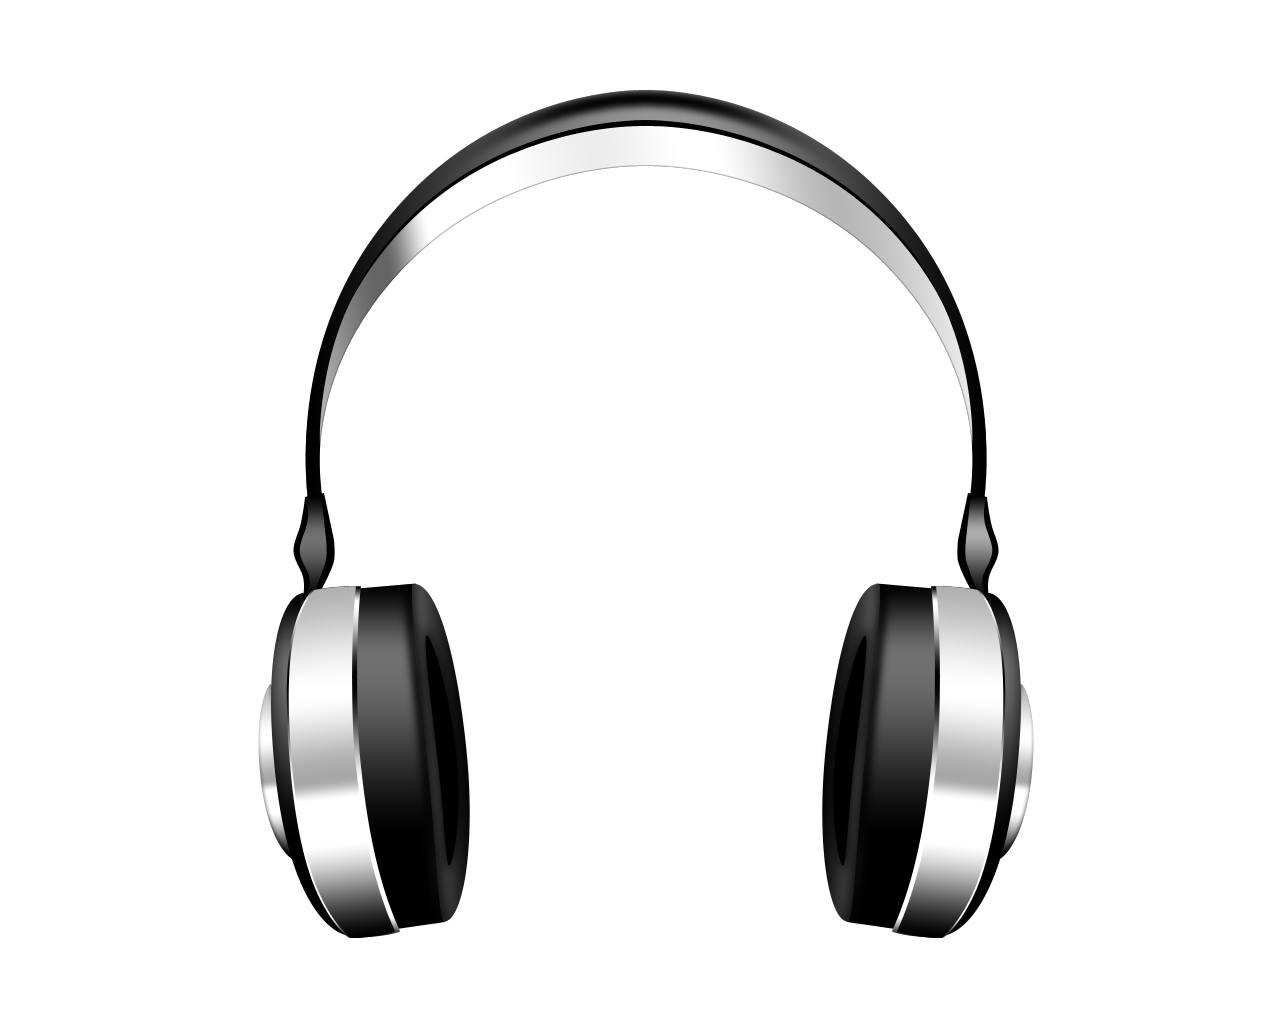 Headphones PNG Images Transparent Free Download.